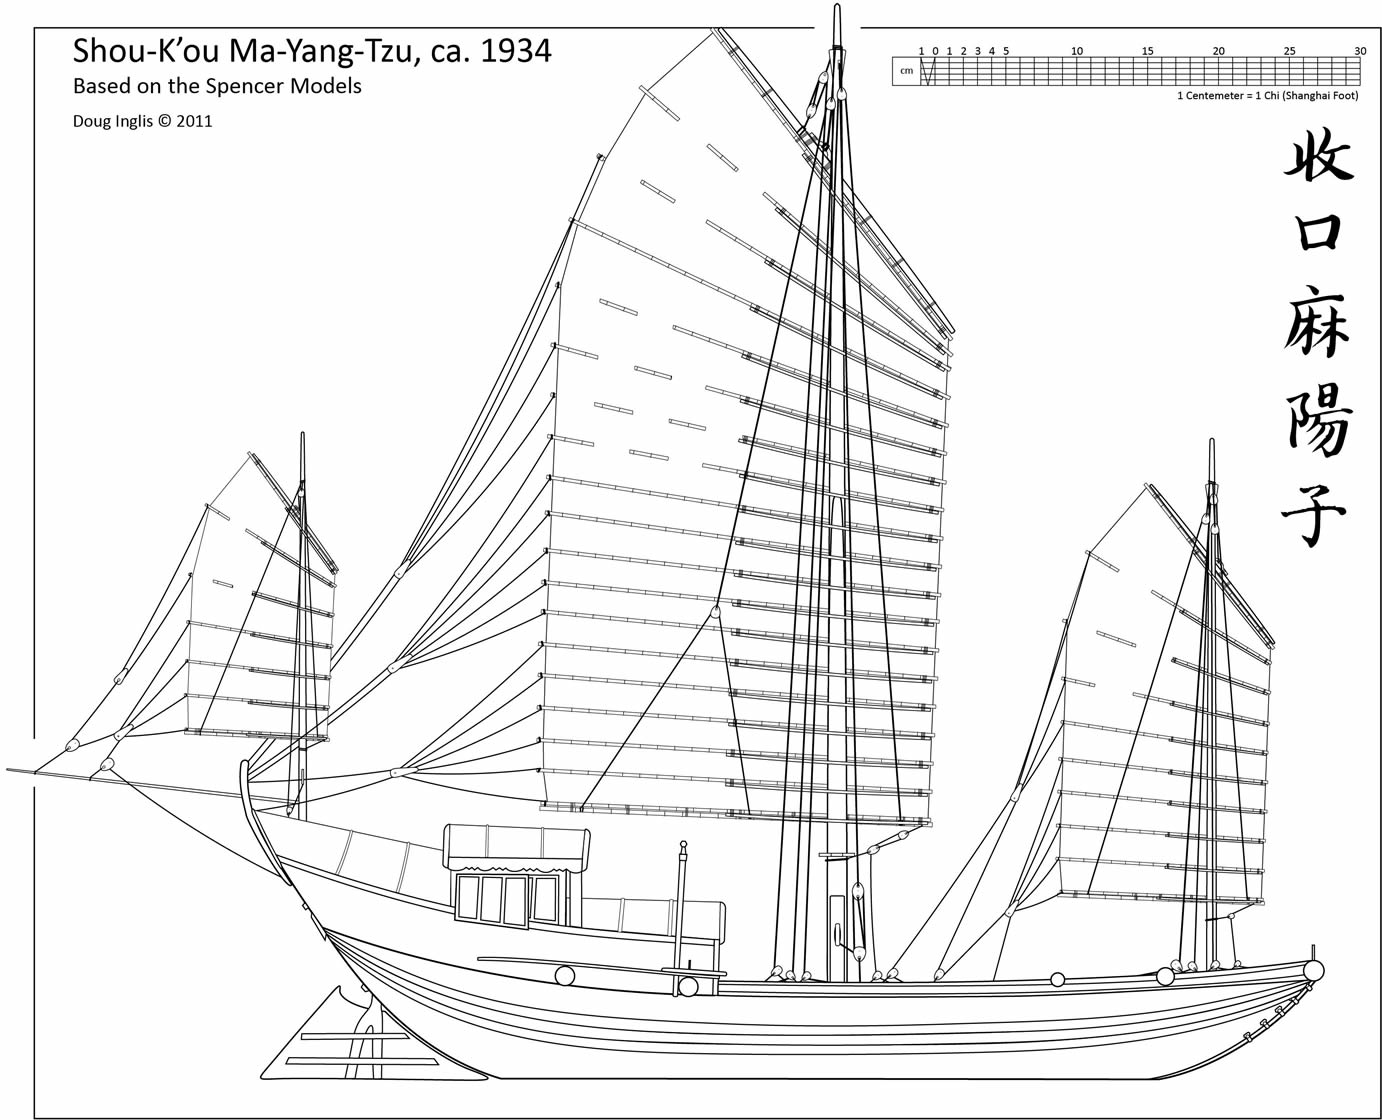 How to get Model ship rigging plans | Tran